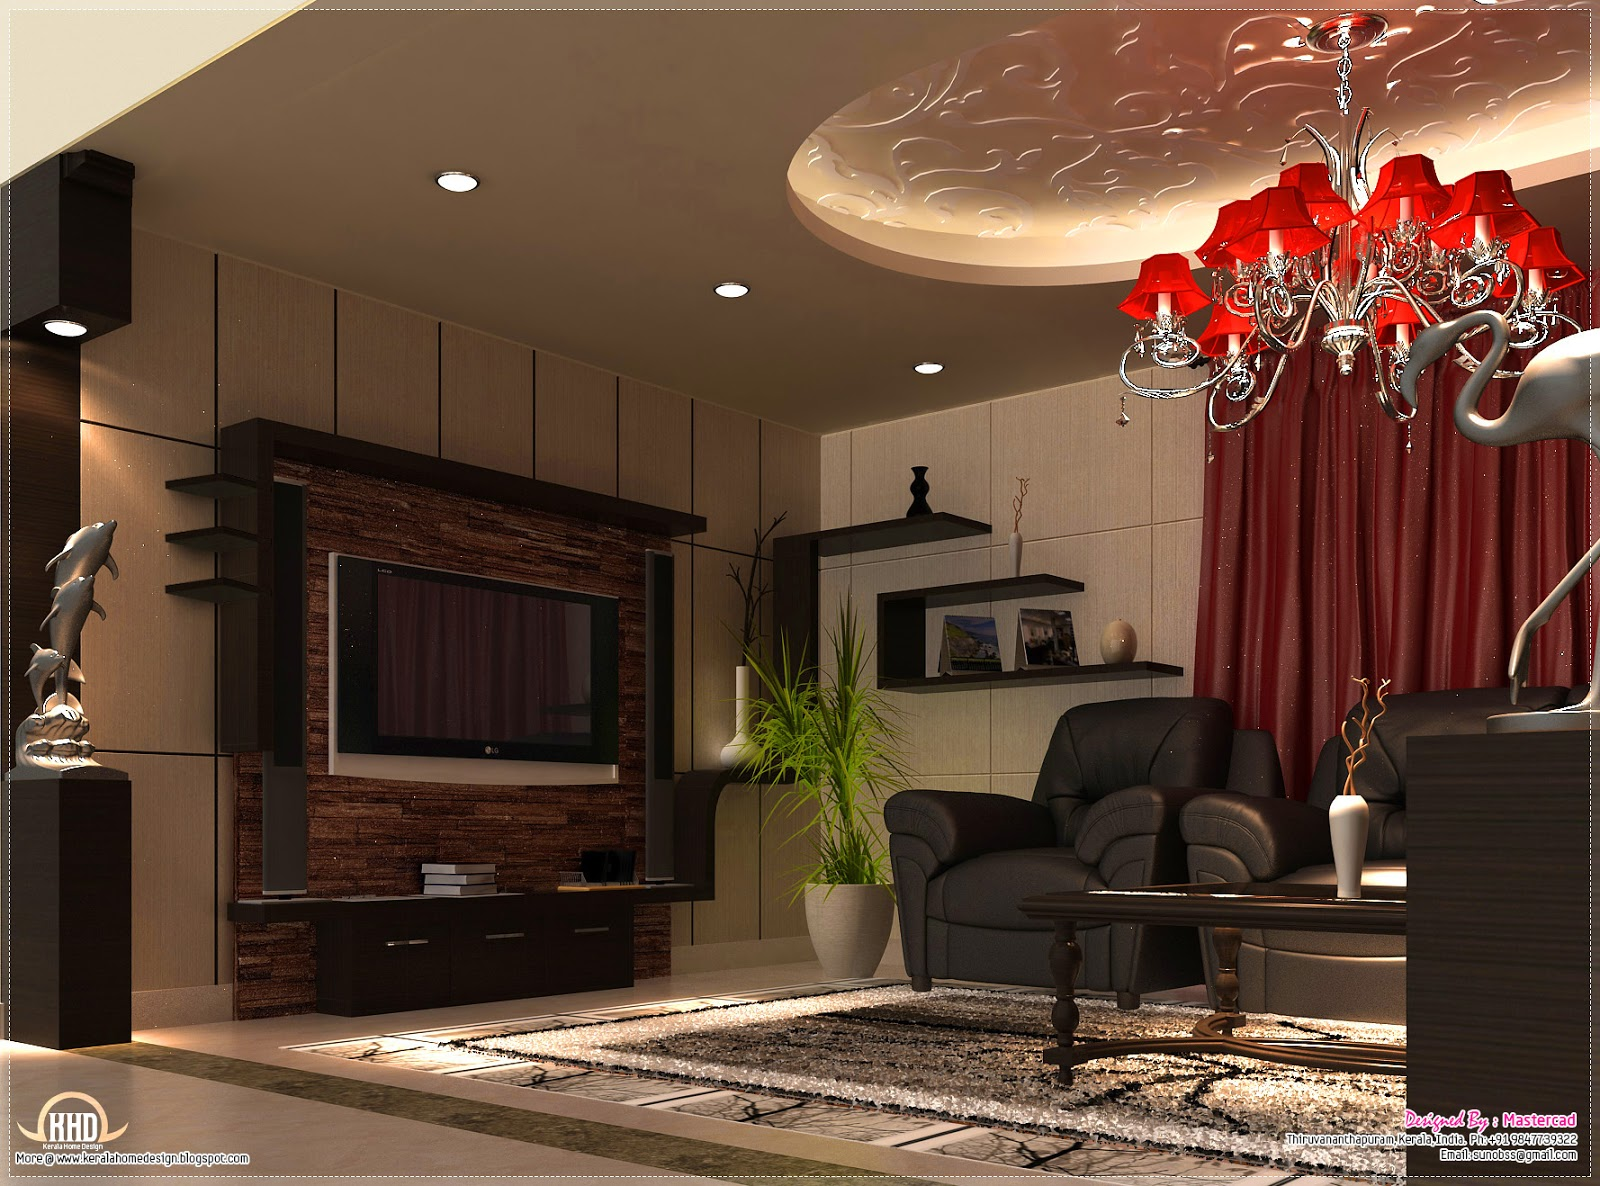 Interior design ideas home kerala plans Home decor ideas for small homes images